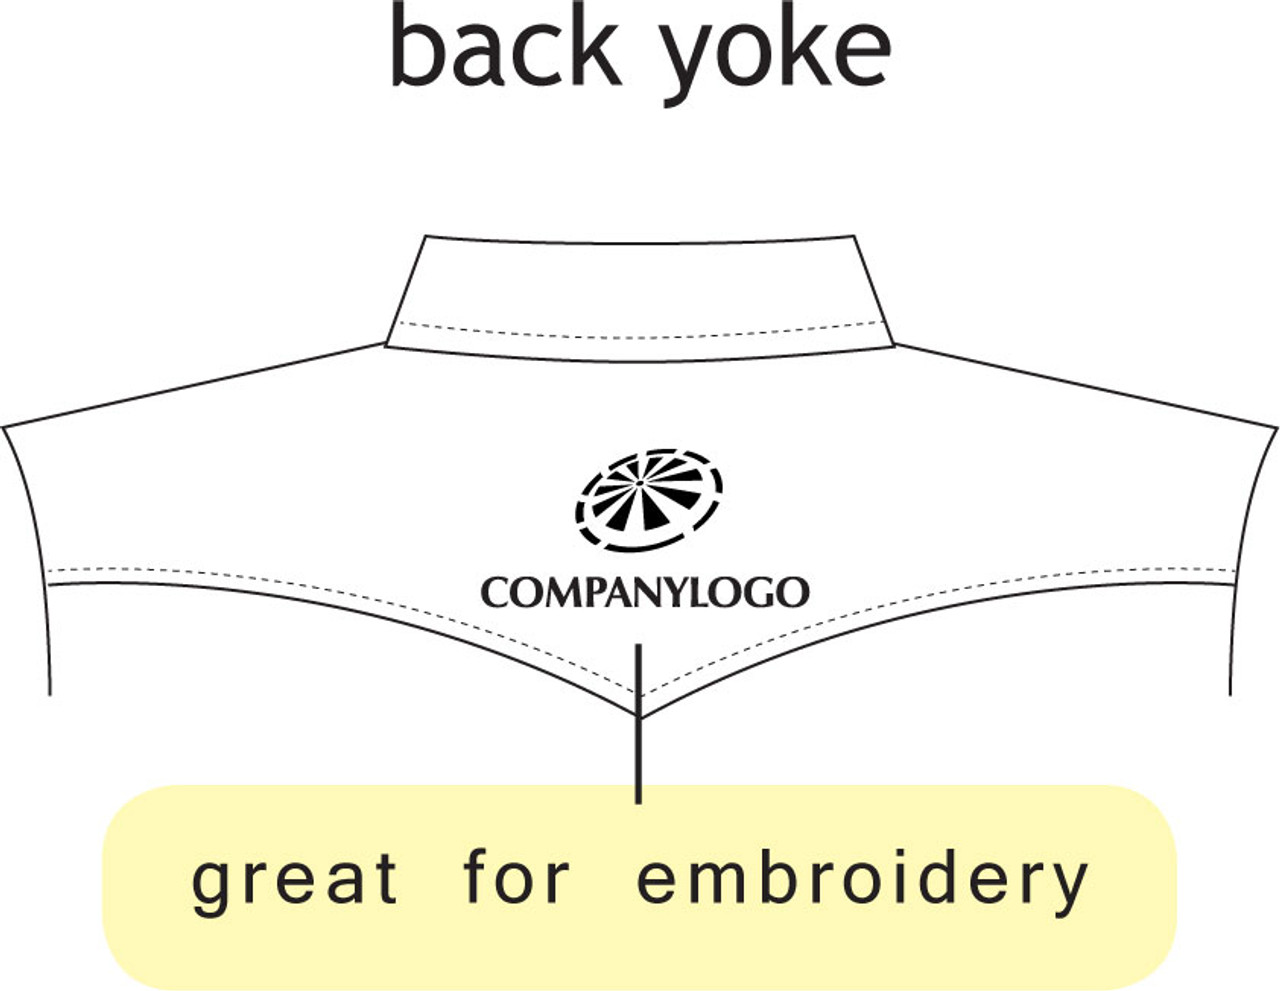 Back area is excellent for embroidering your companys' name on it